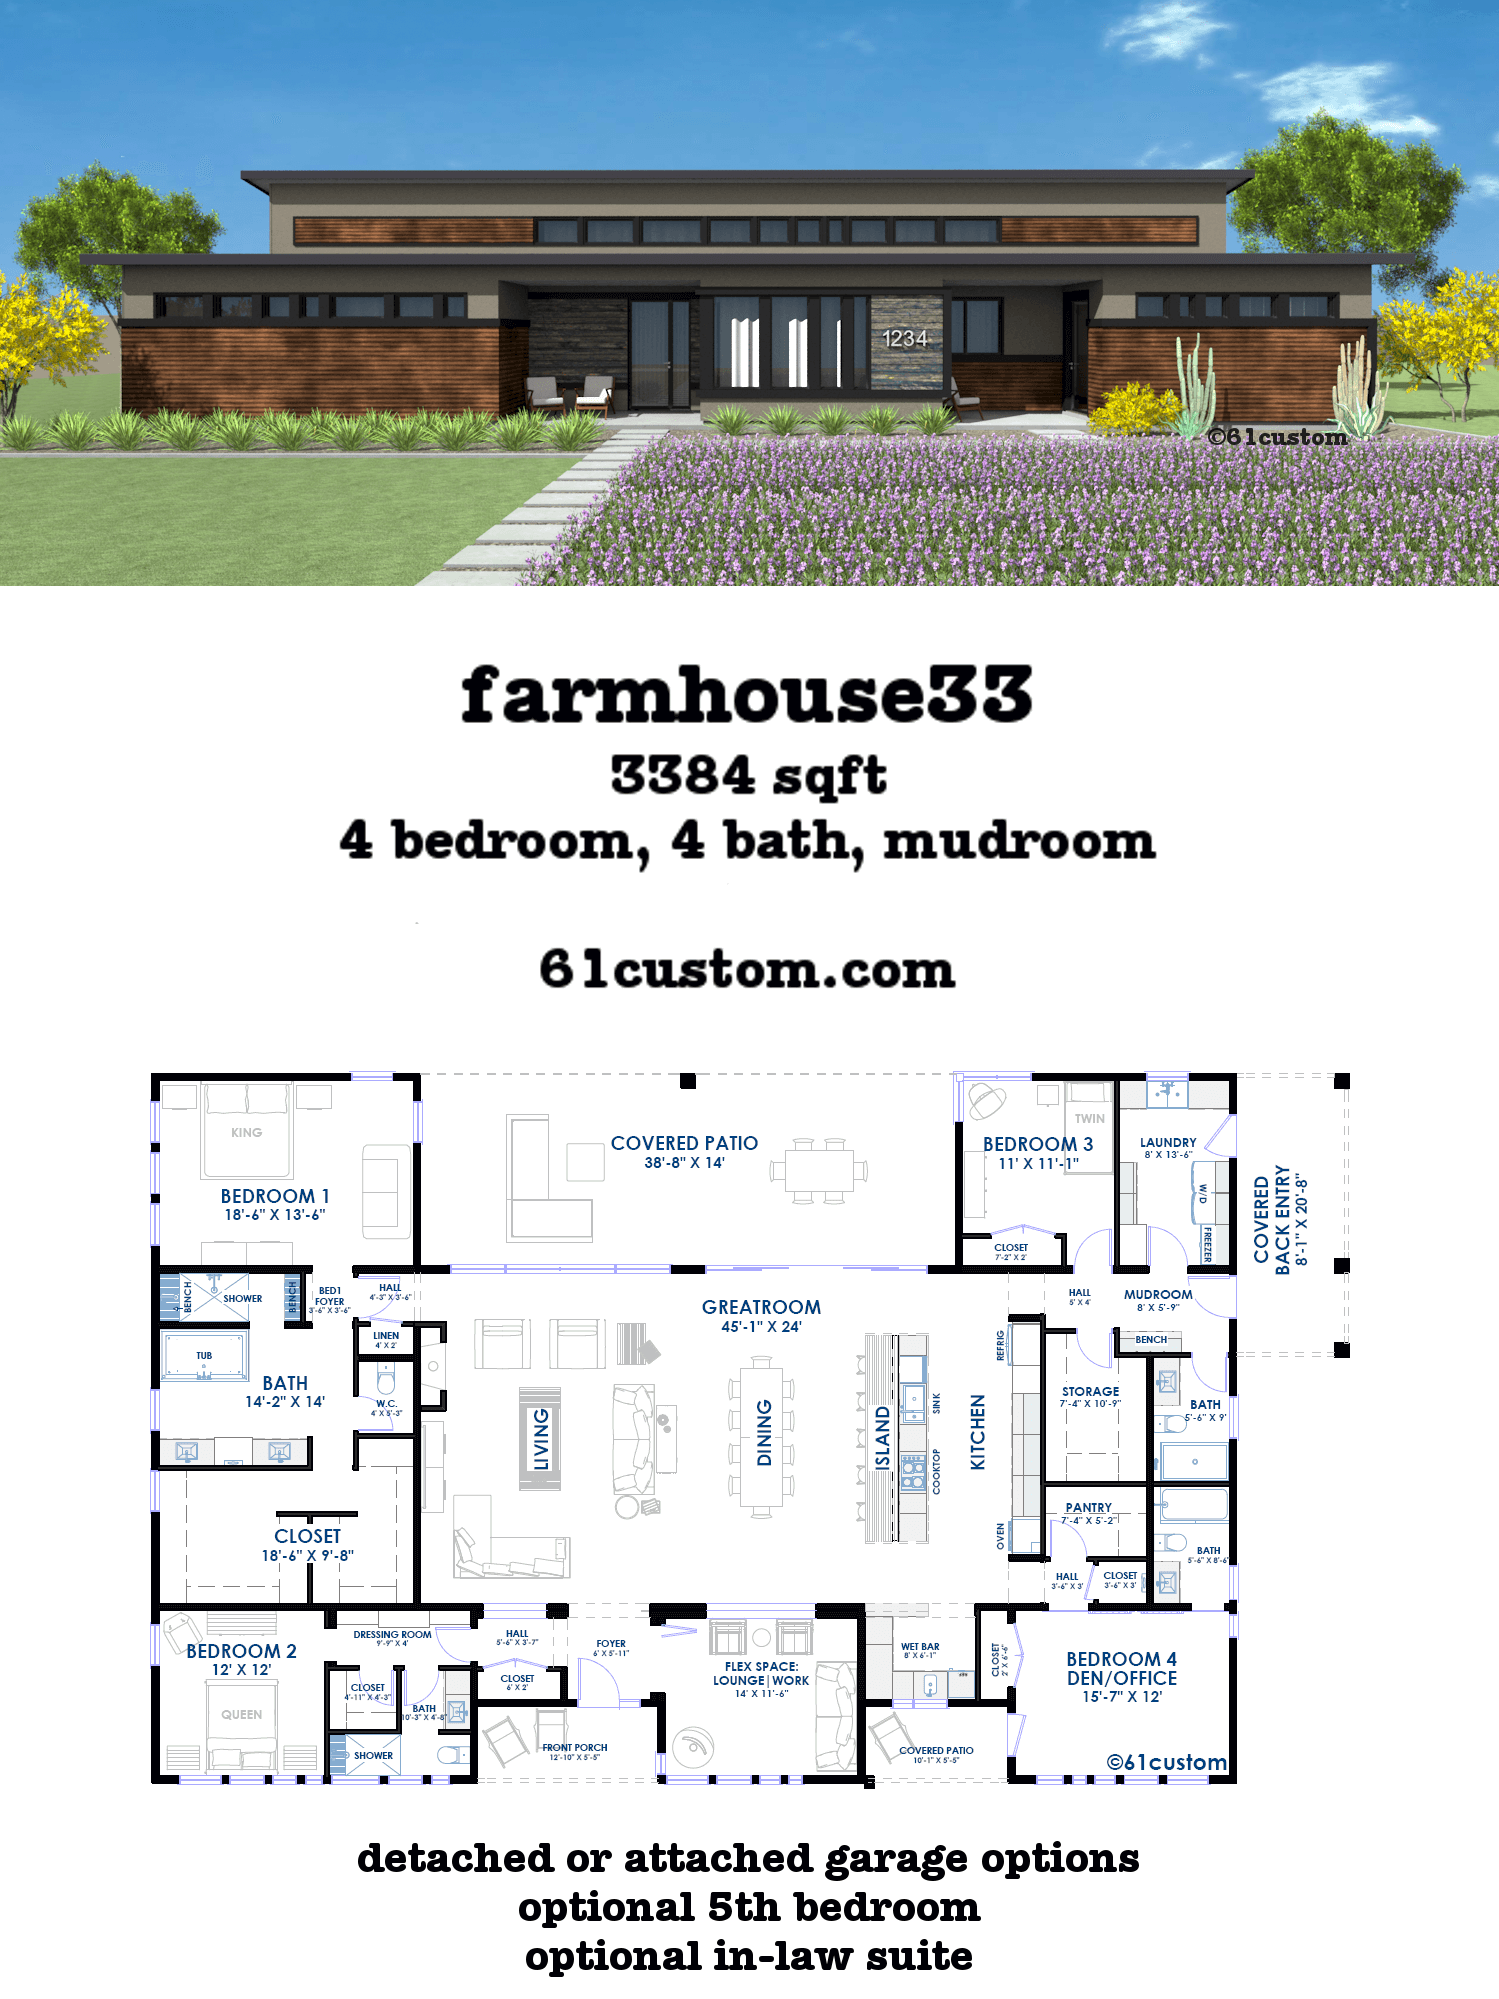 farmhouse33 modern farmhouse plan farmhouse33 houseplan 61customcom - Modern Farmhouse Plans